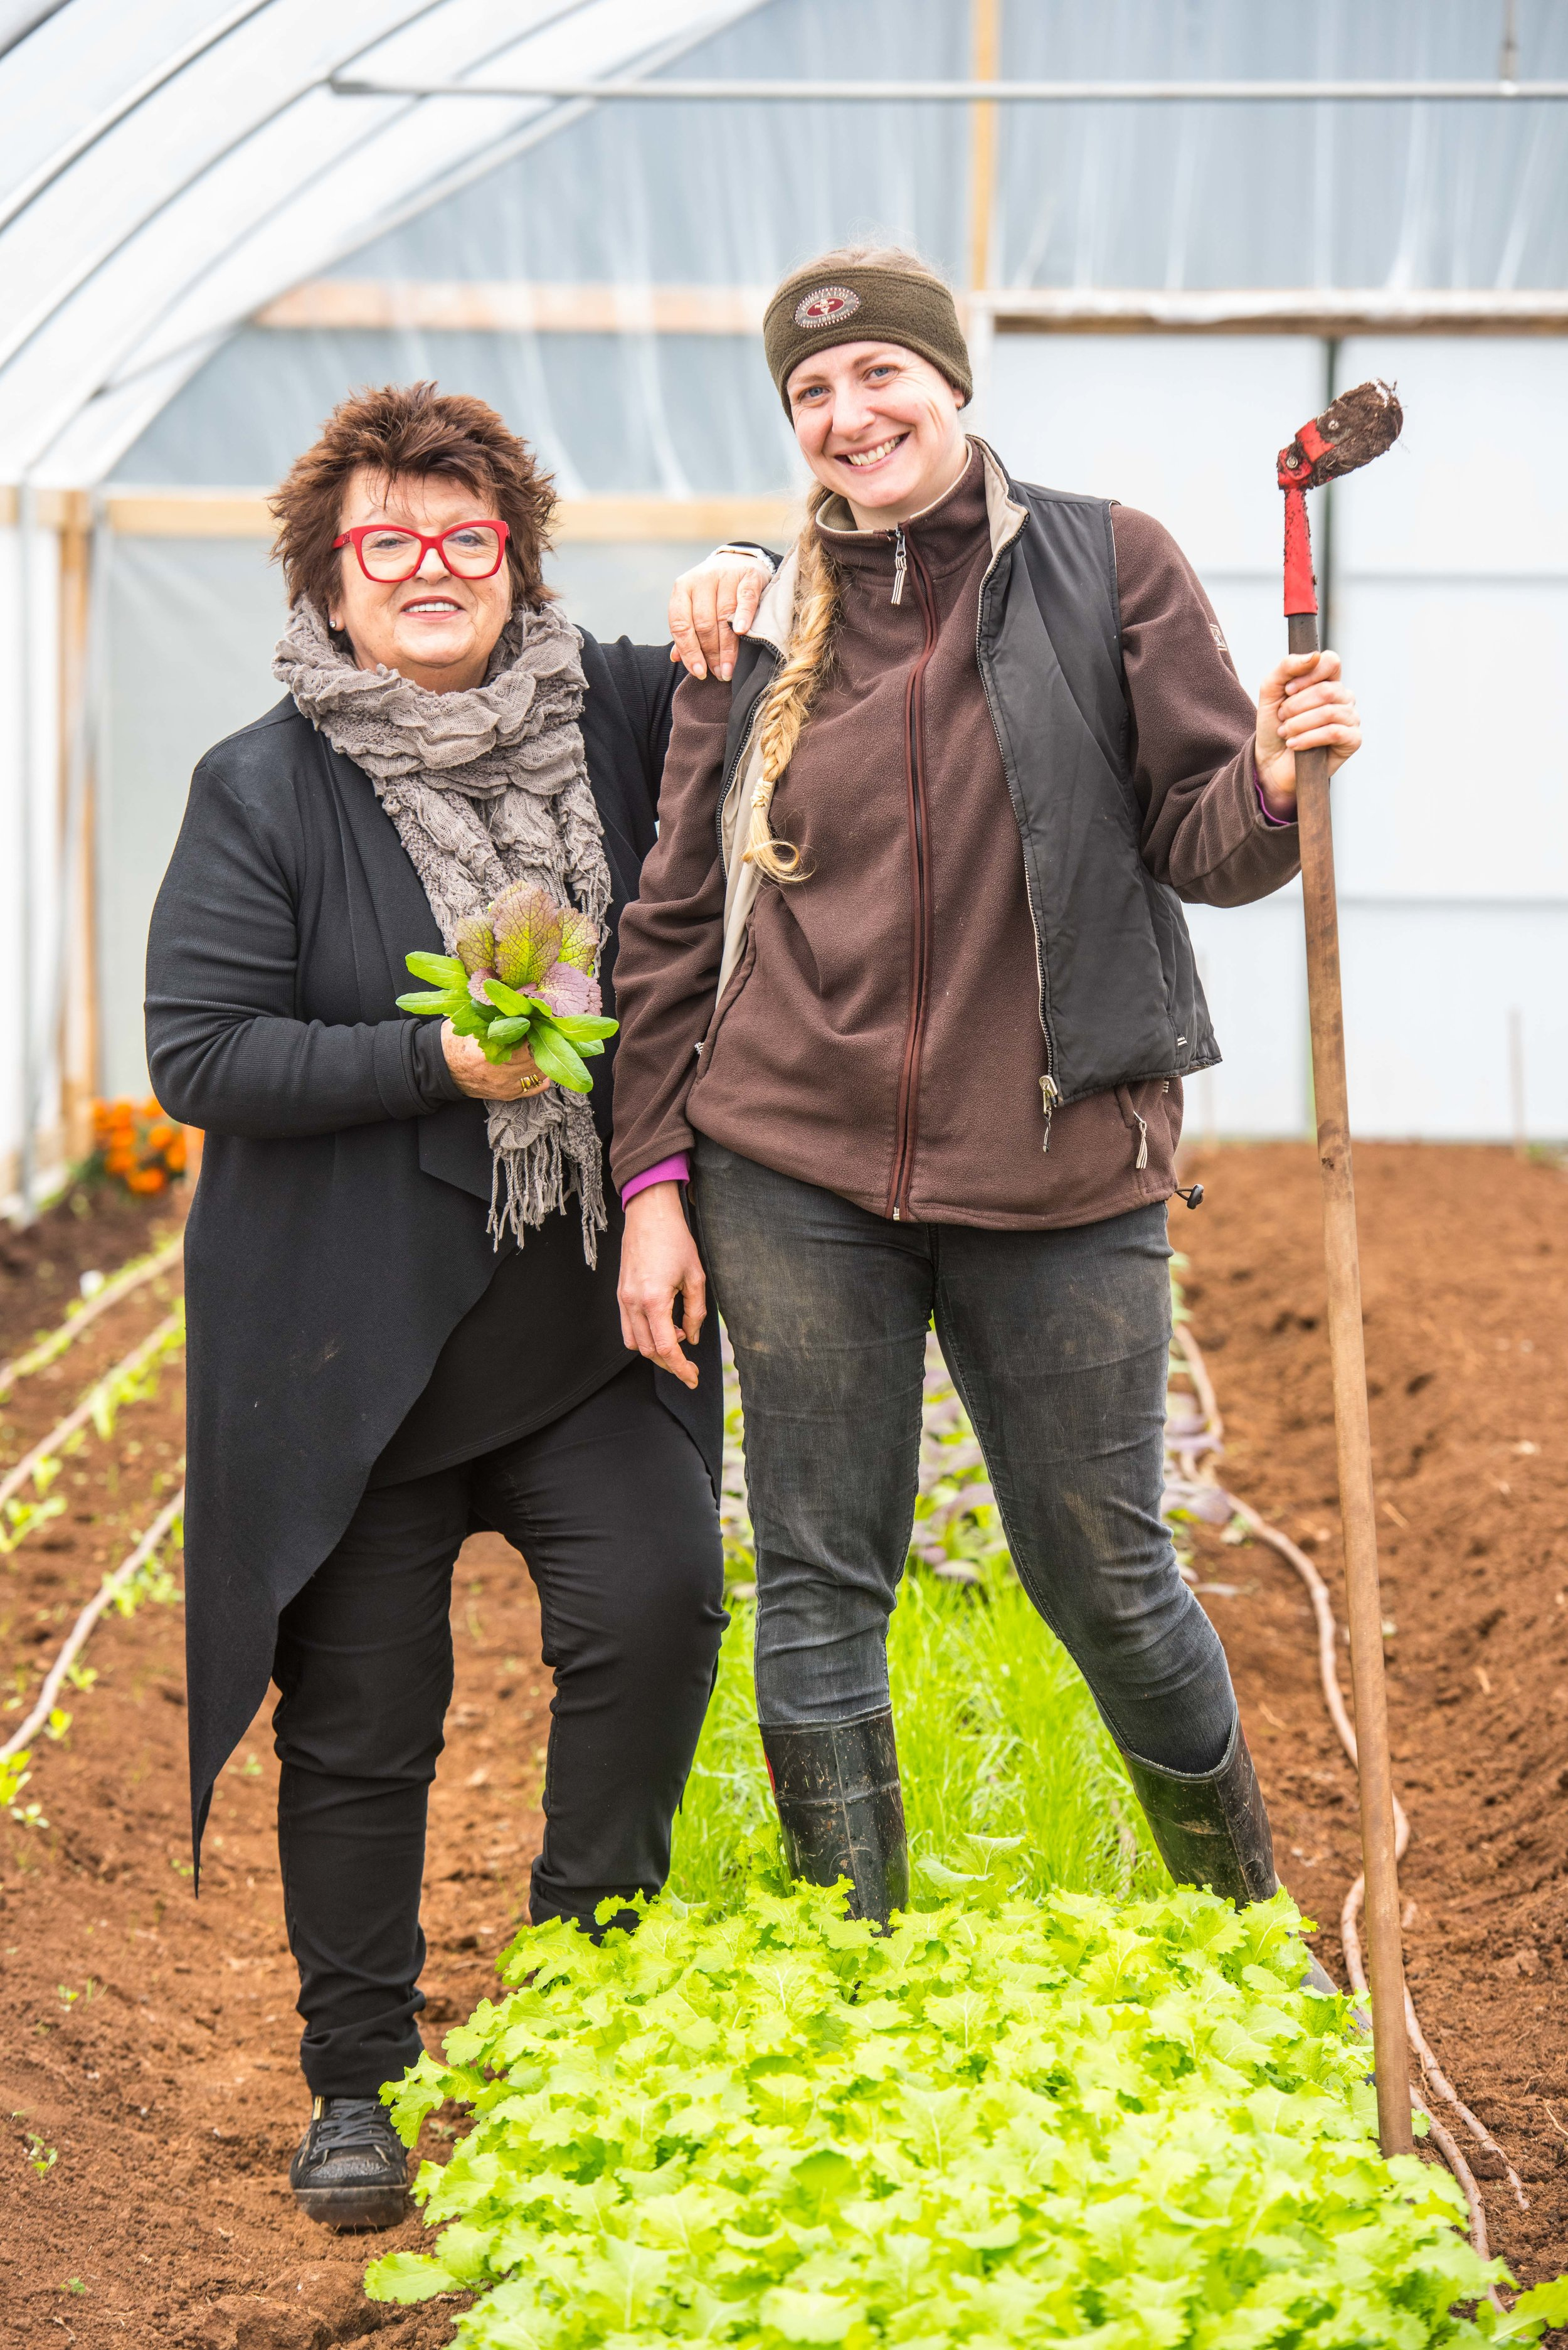 Alla Wolf-Tasker and Jen Pryke at Dairy Flat Farm